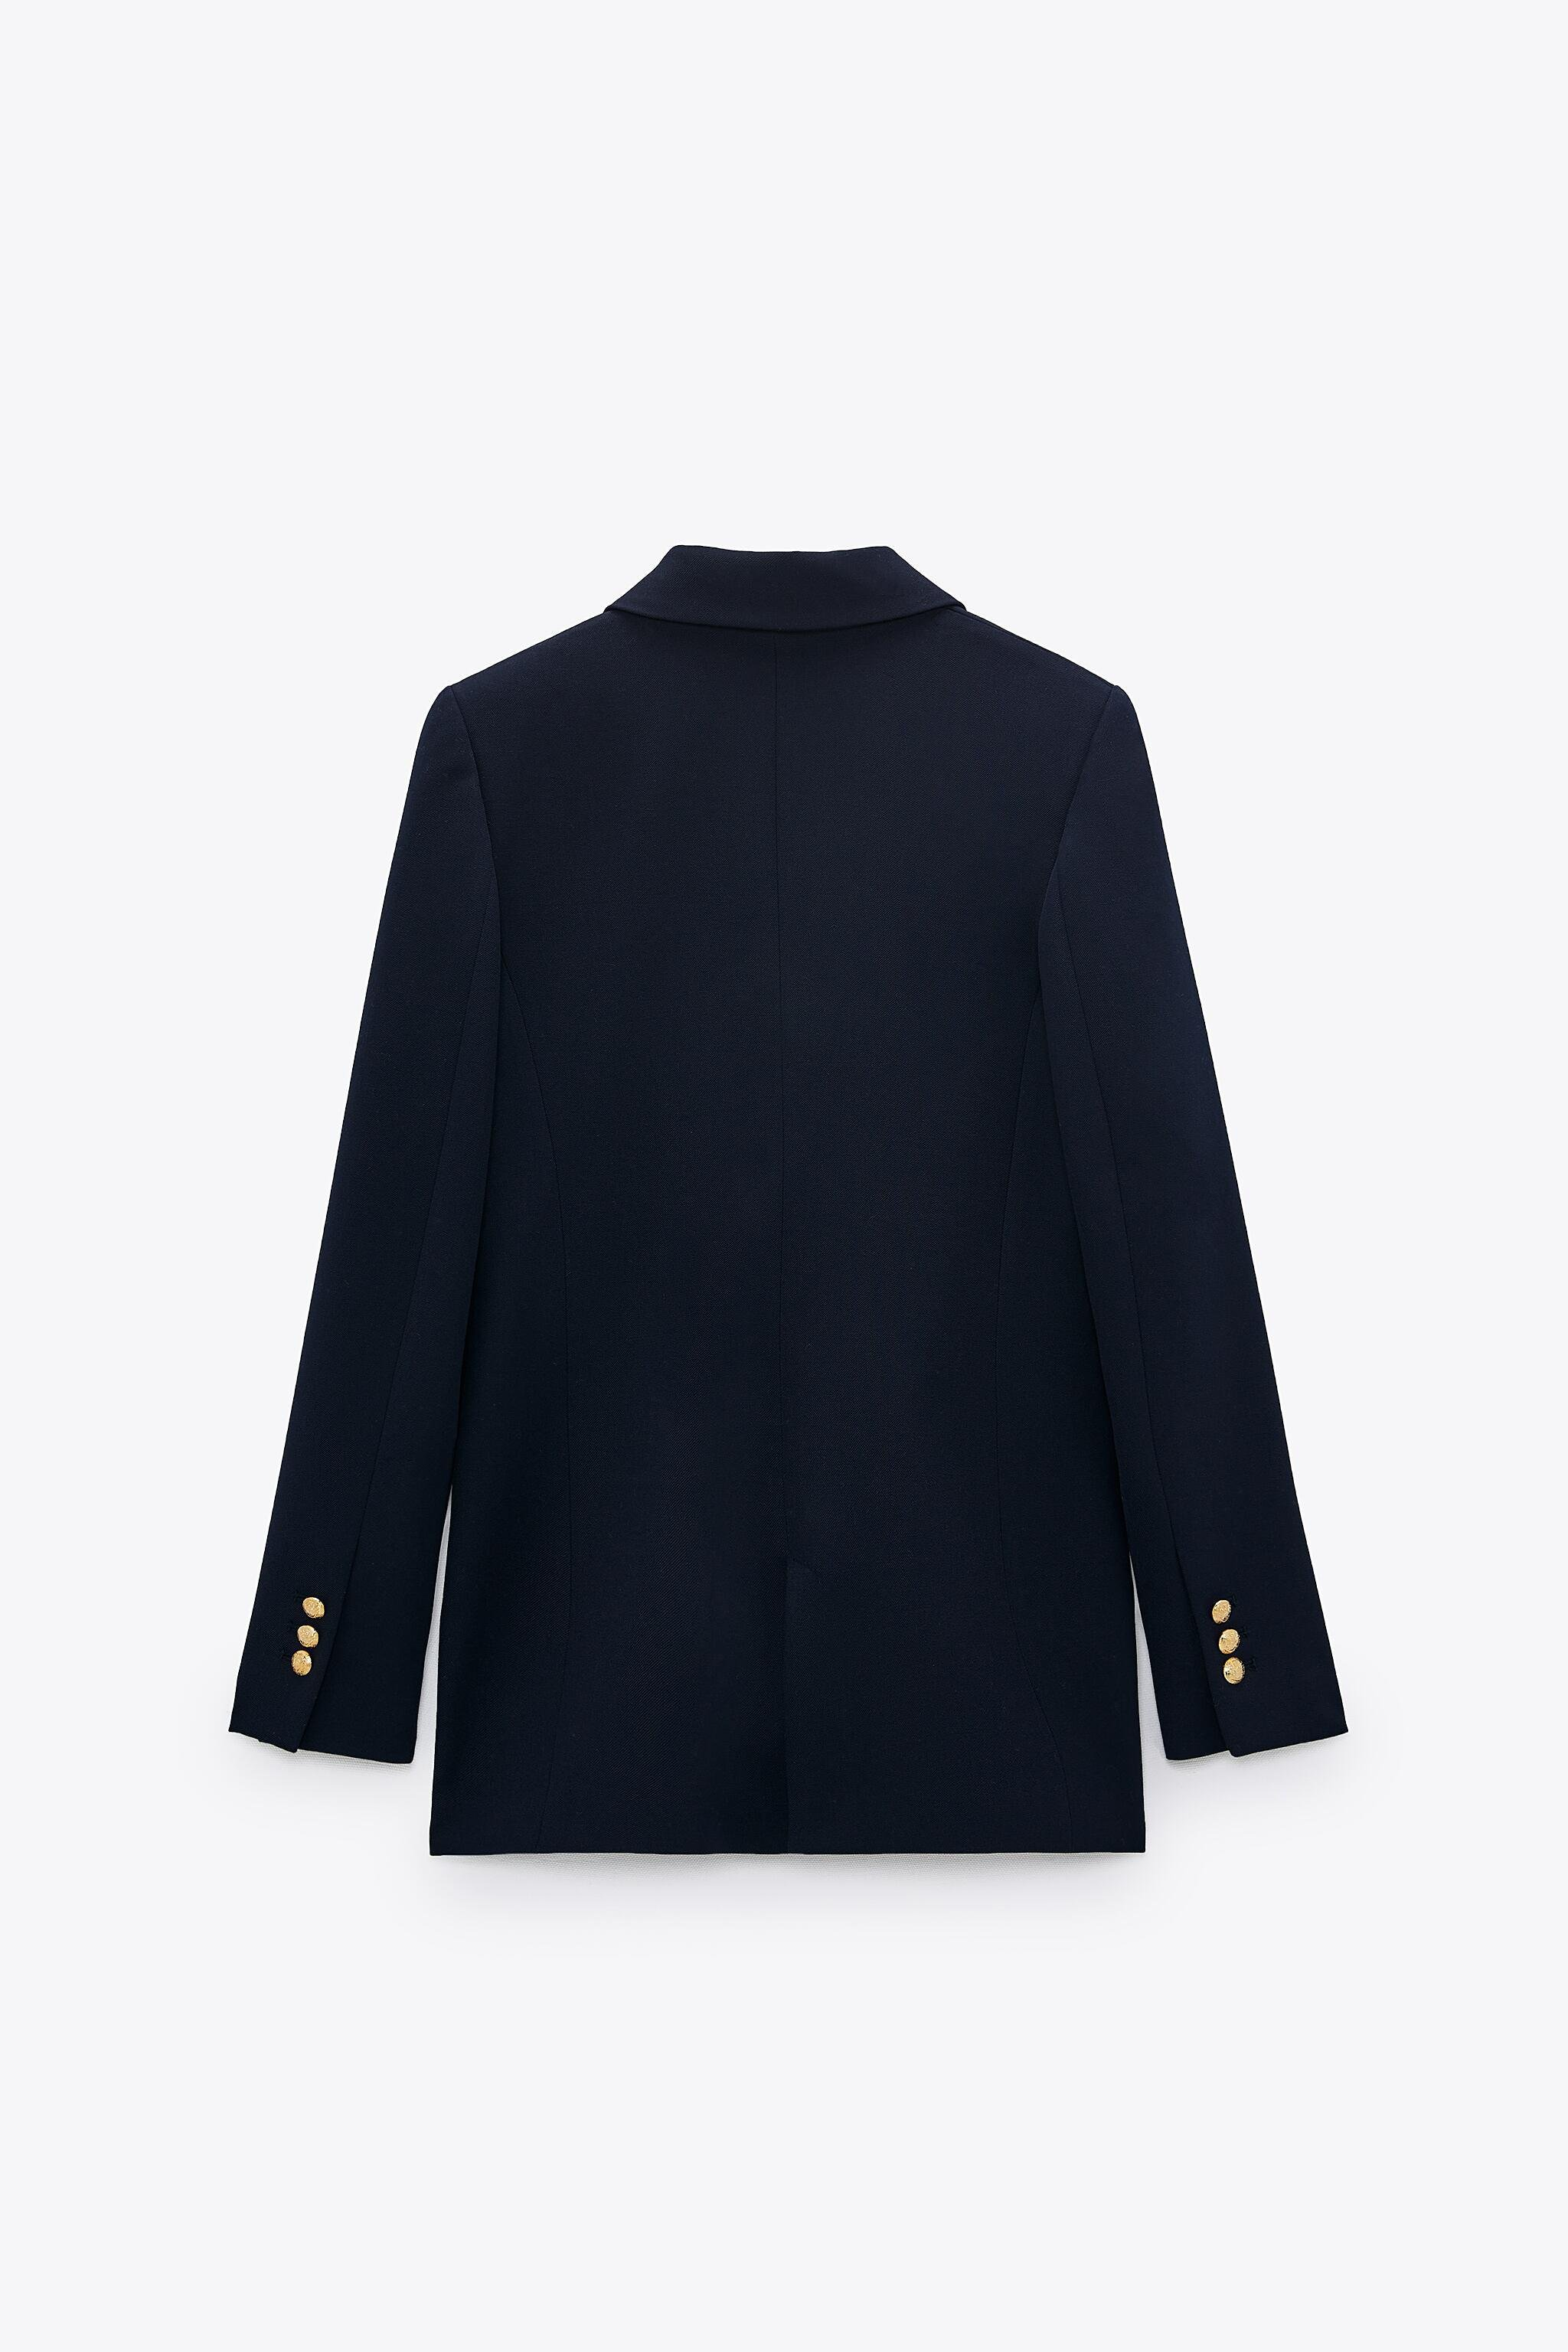 TAILORED BLAZER WITH BUTTONS 8